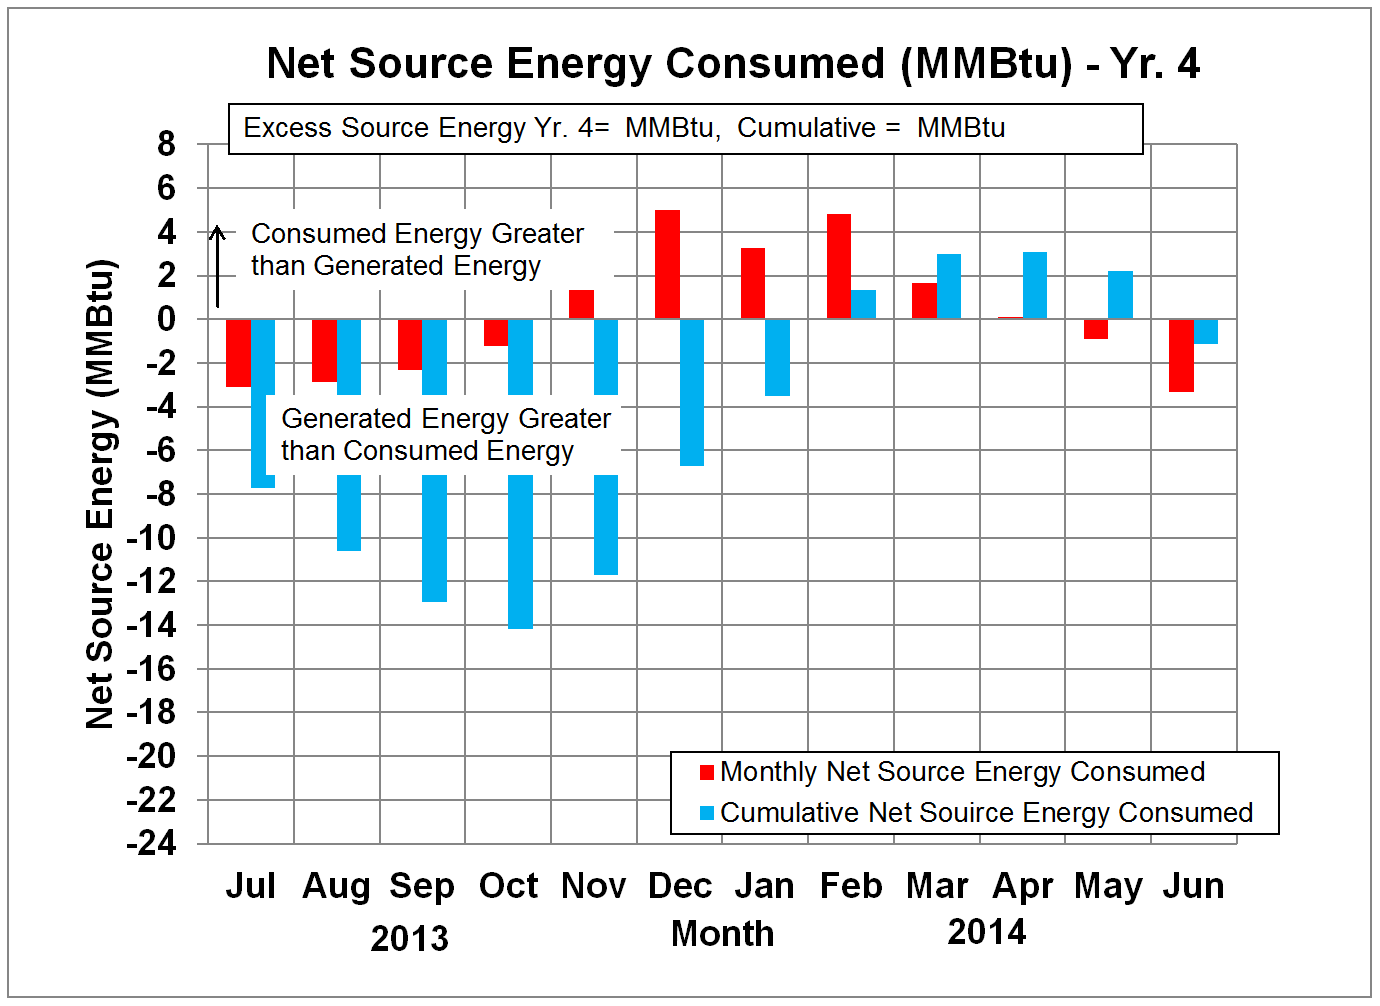 Net Source Energy in Million Btu's - Yr. 4